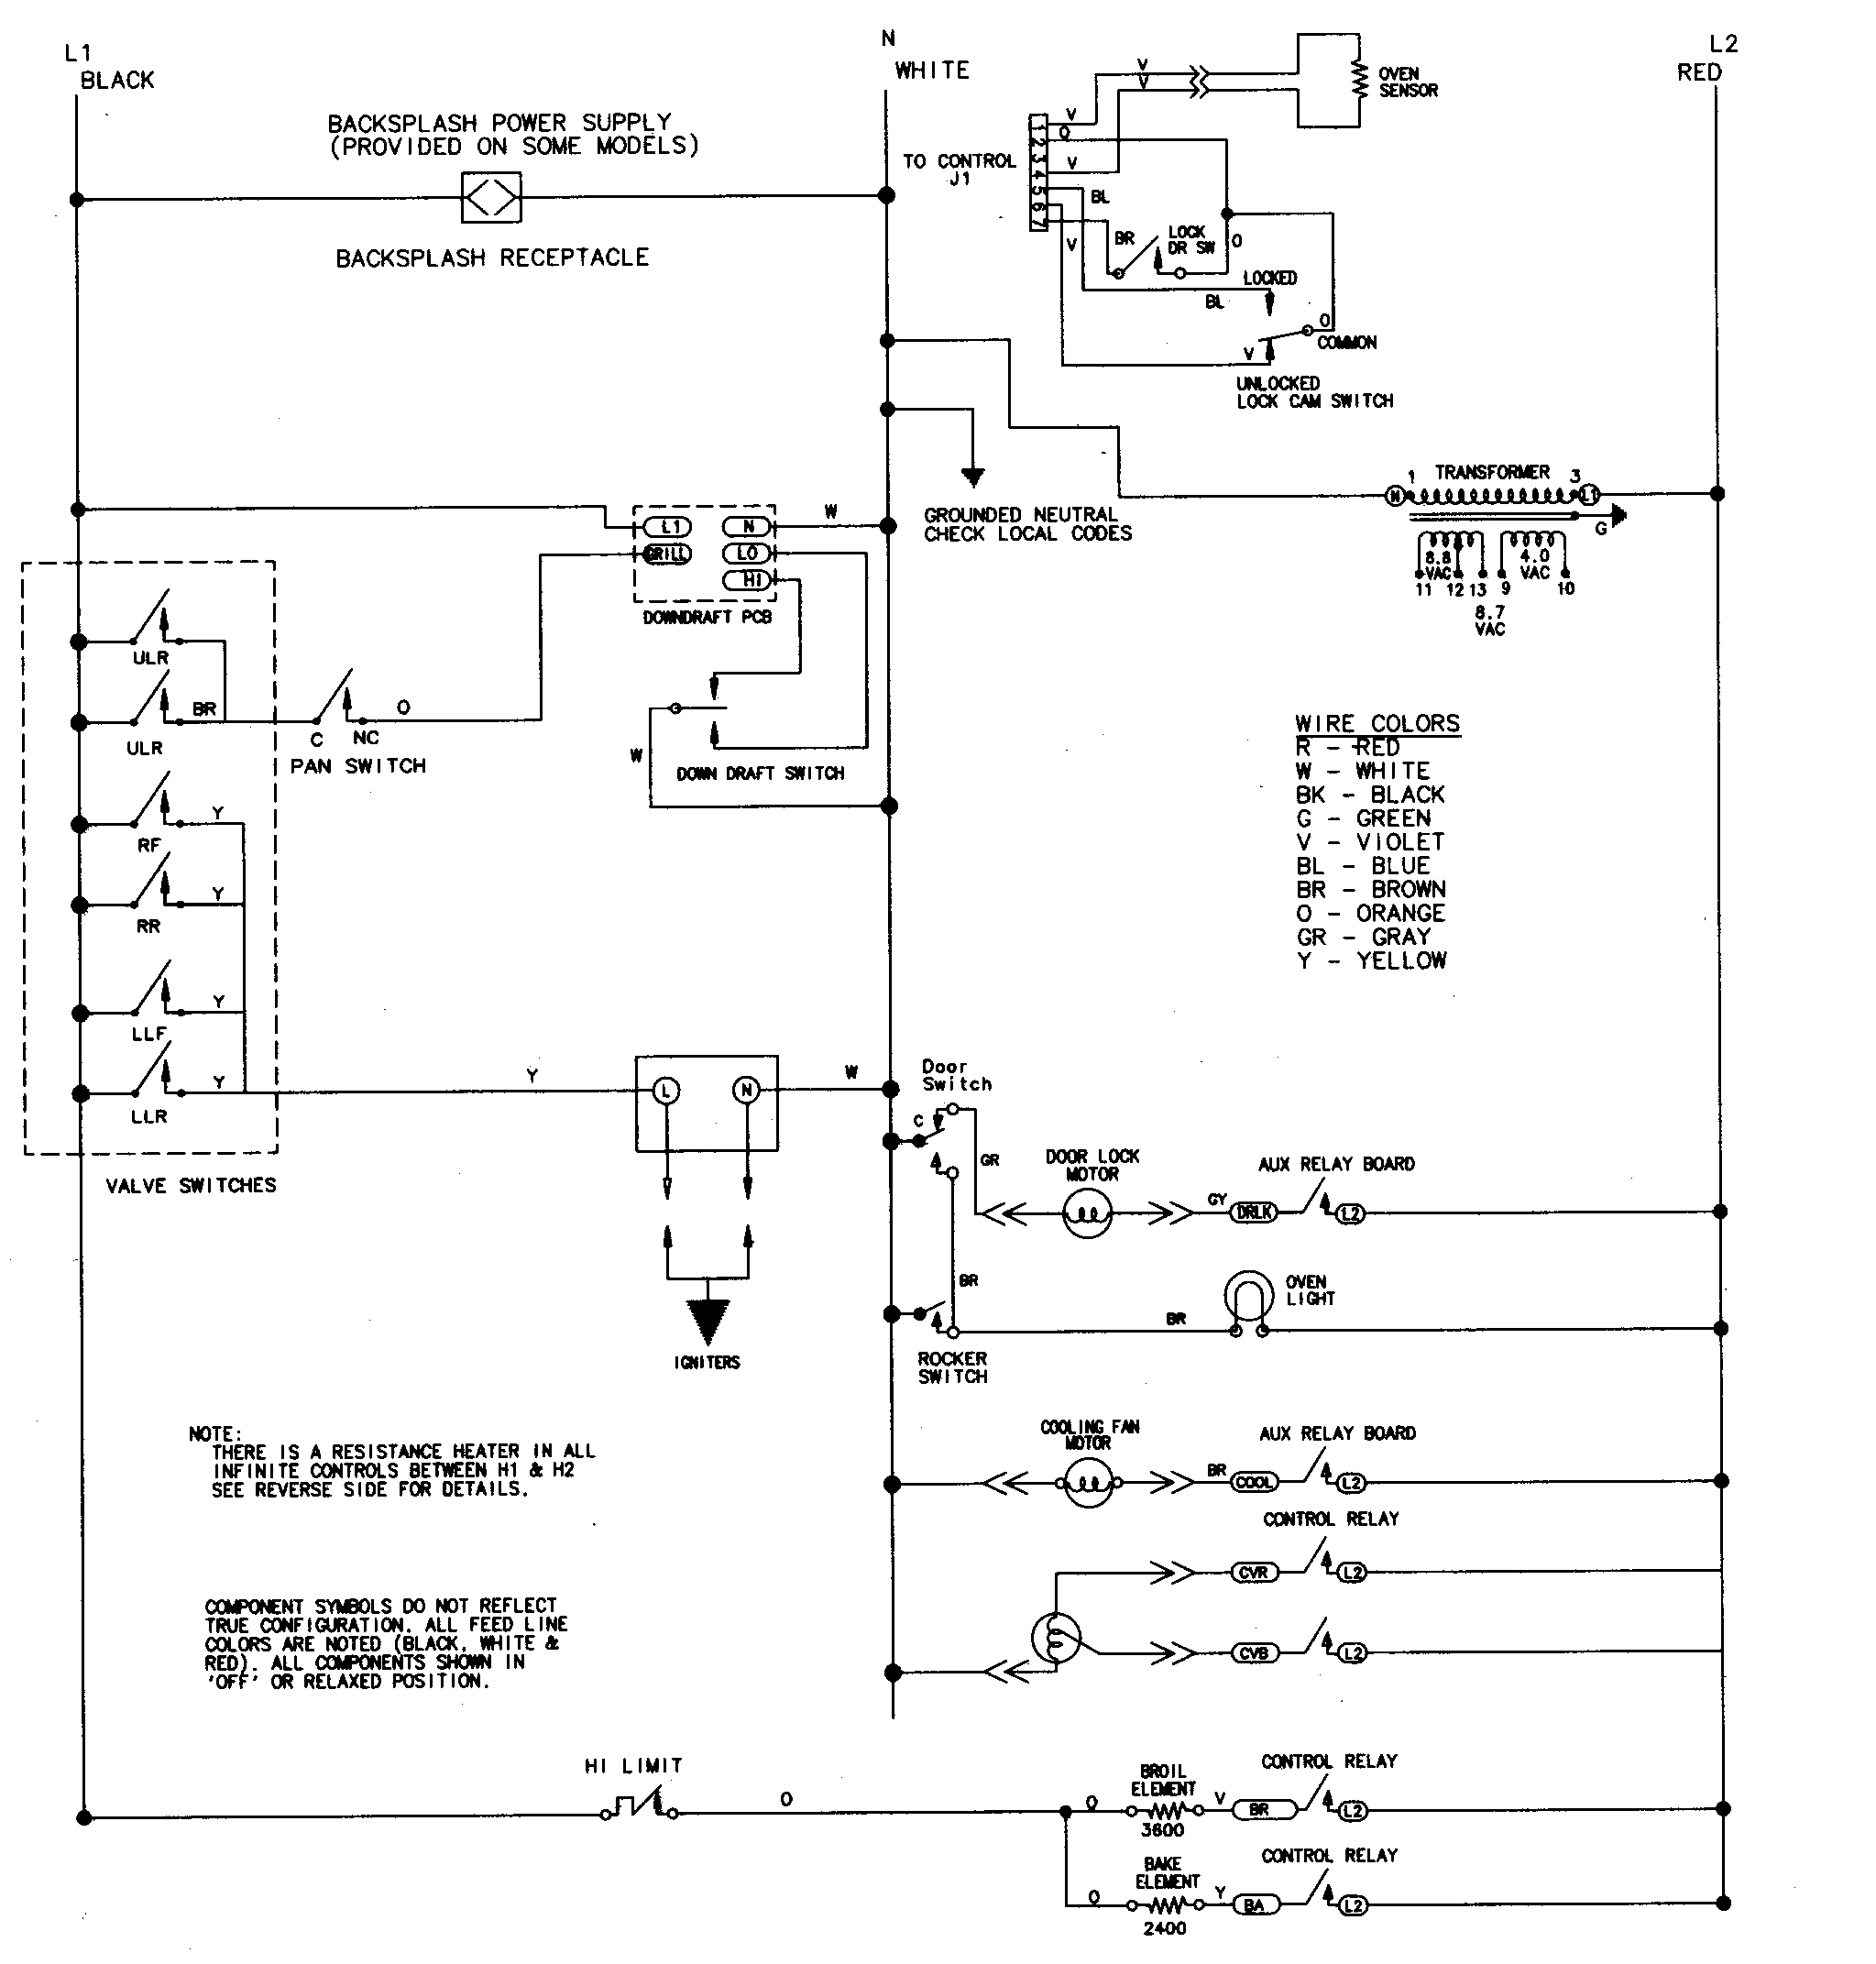 harman pellet stove parts diagram  harman  get free image